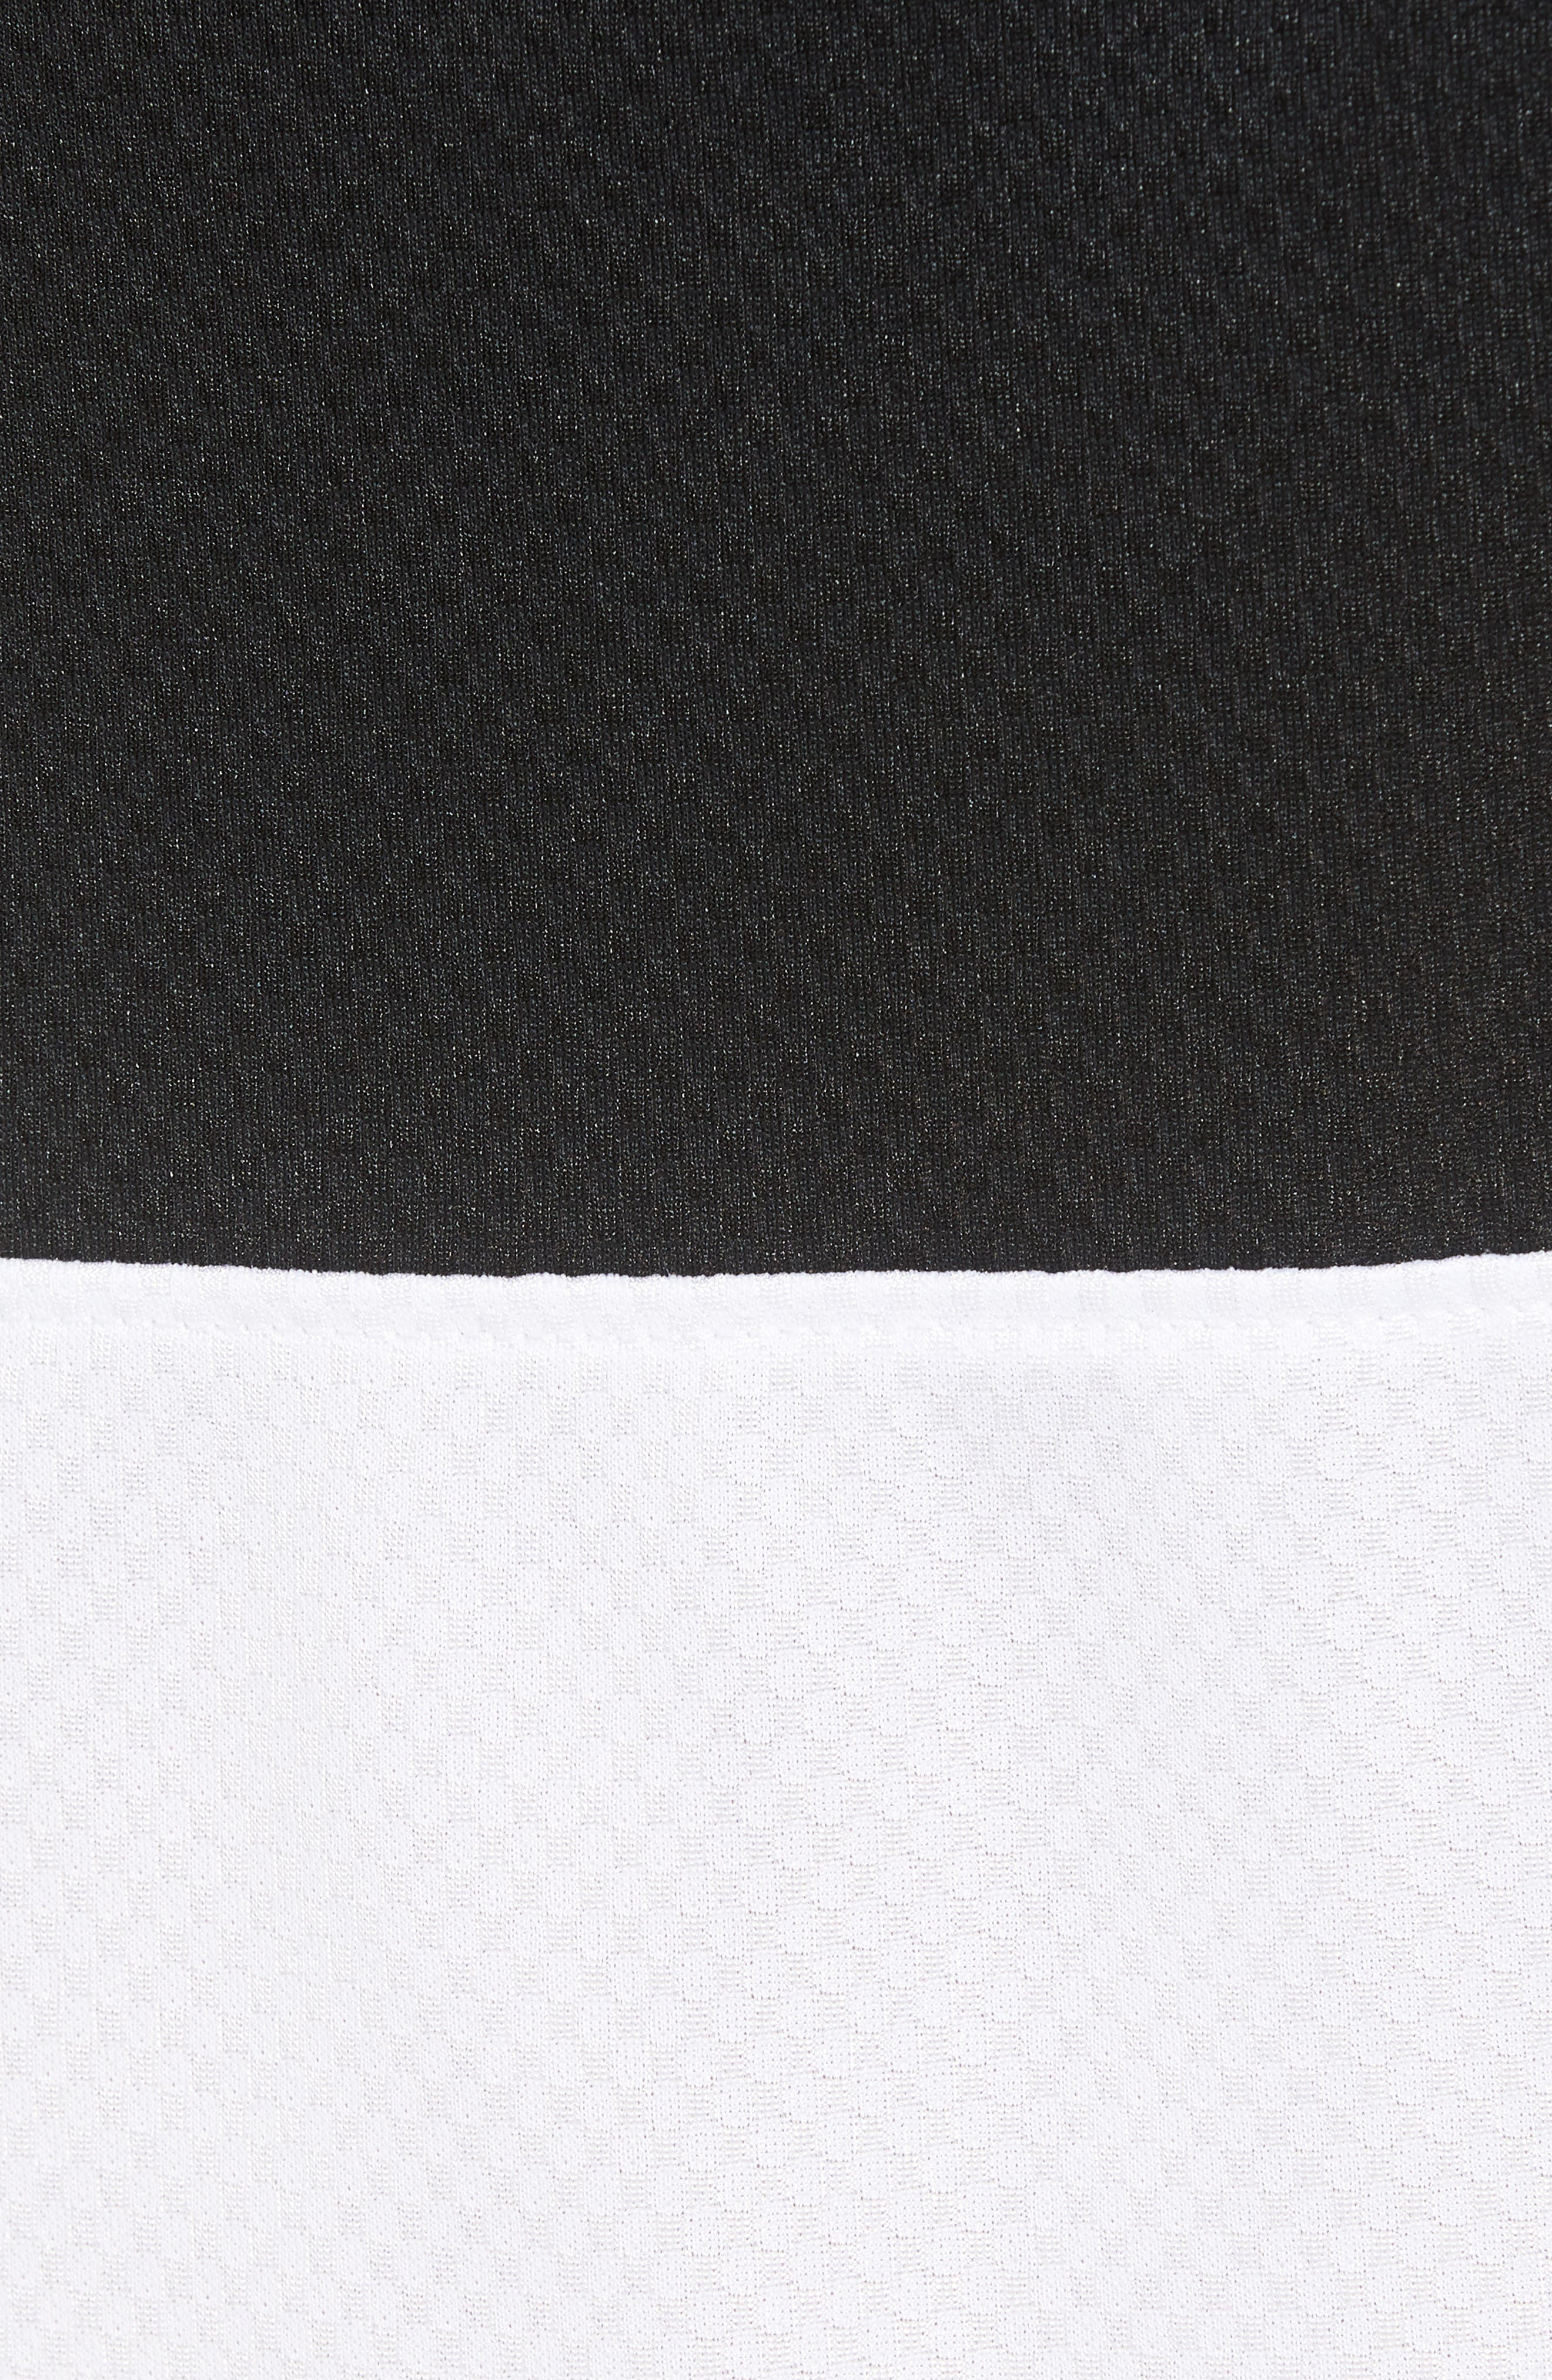 Rise Shorts,                             Alternate thumbnail 5, color,                             WHITE/ BLACK/ BLACK